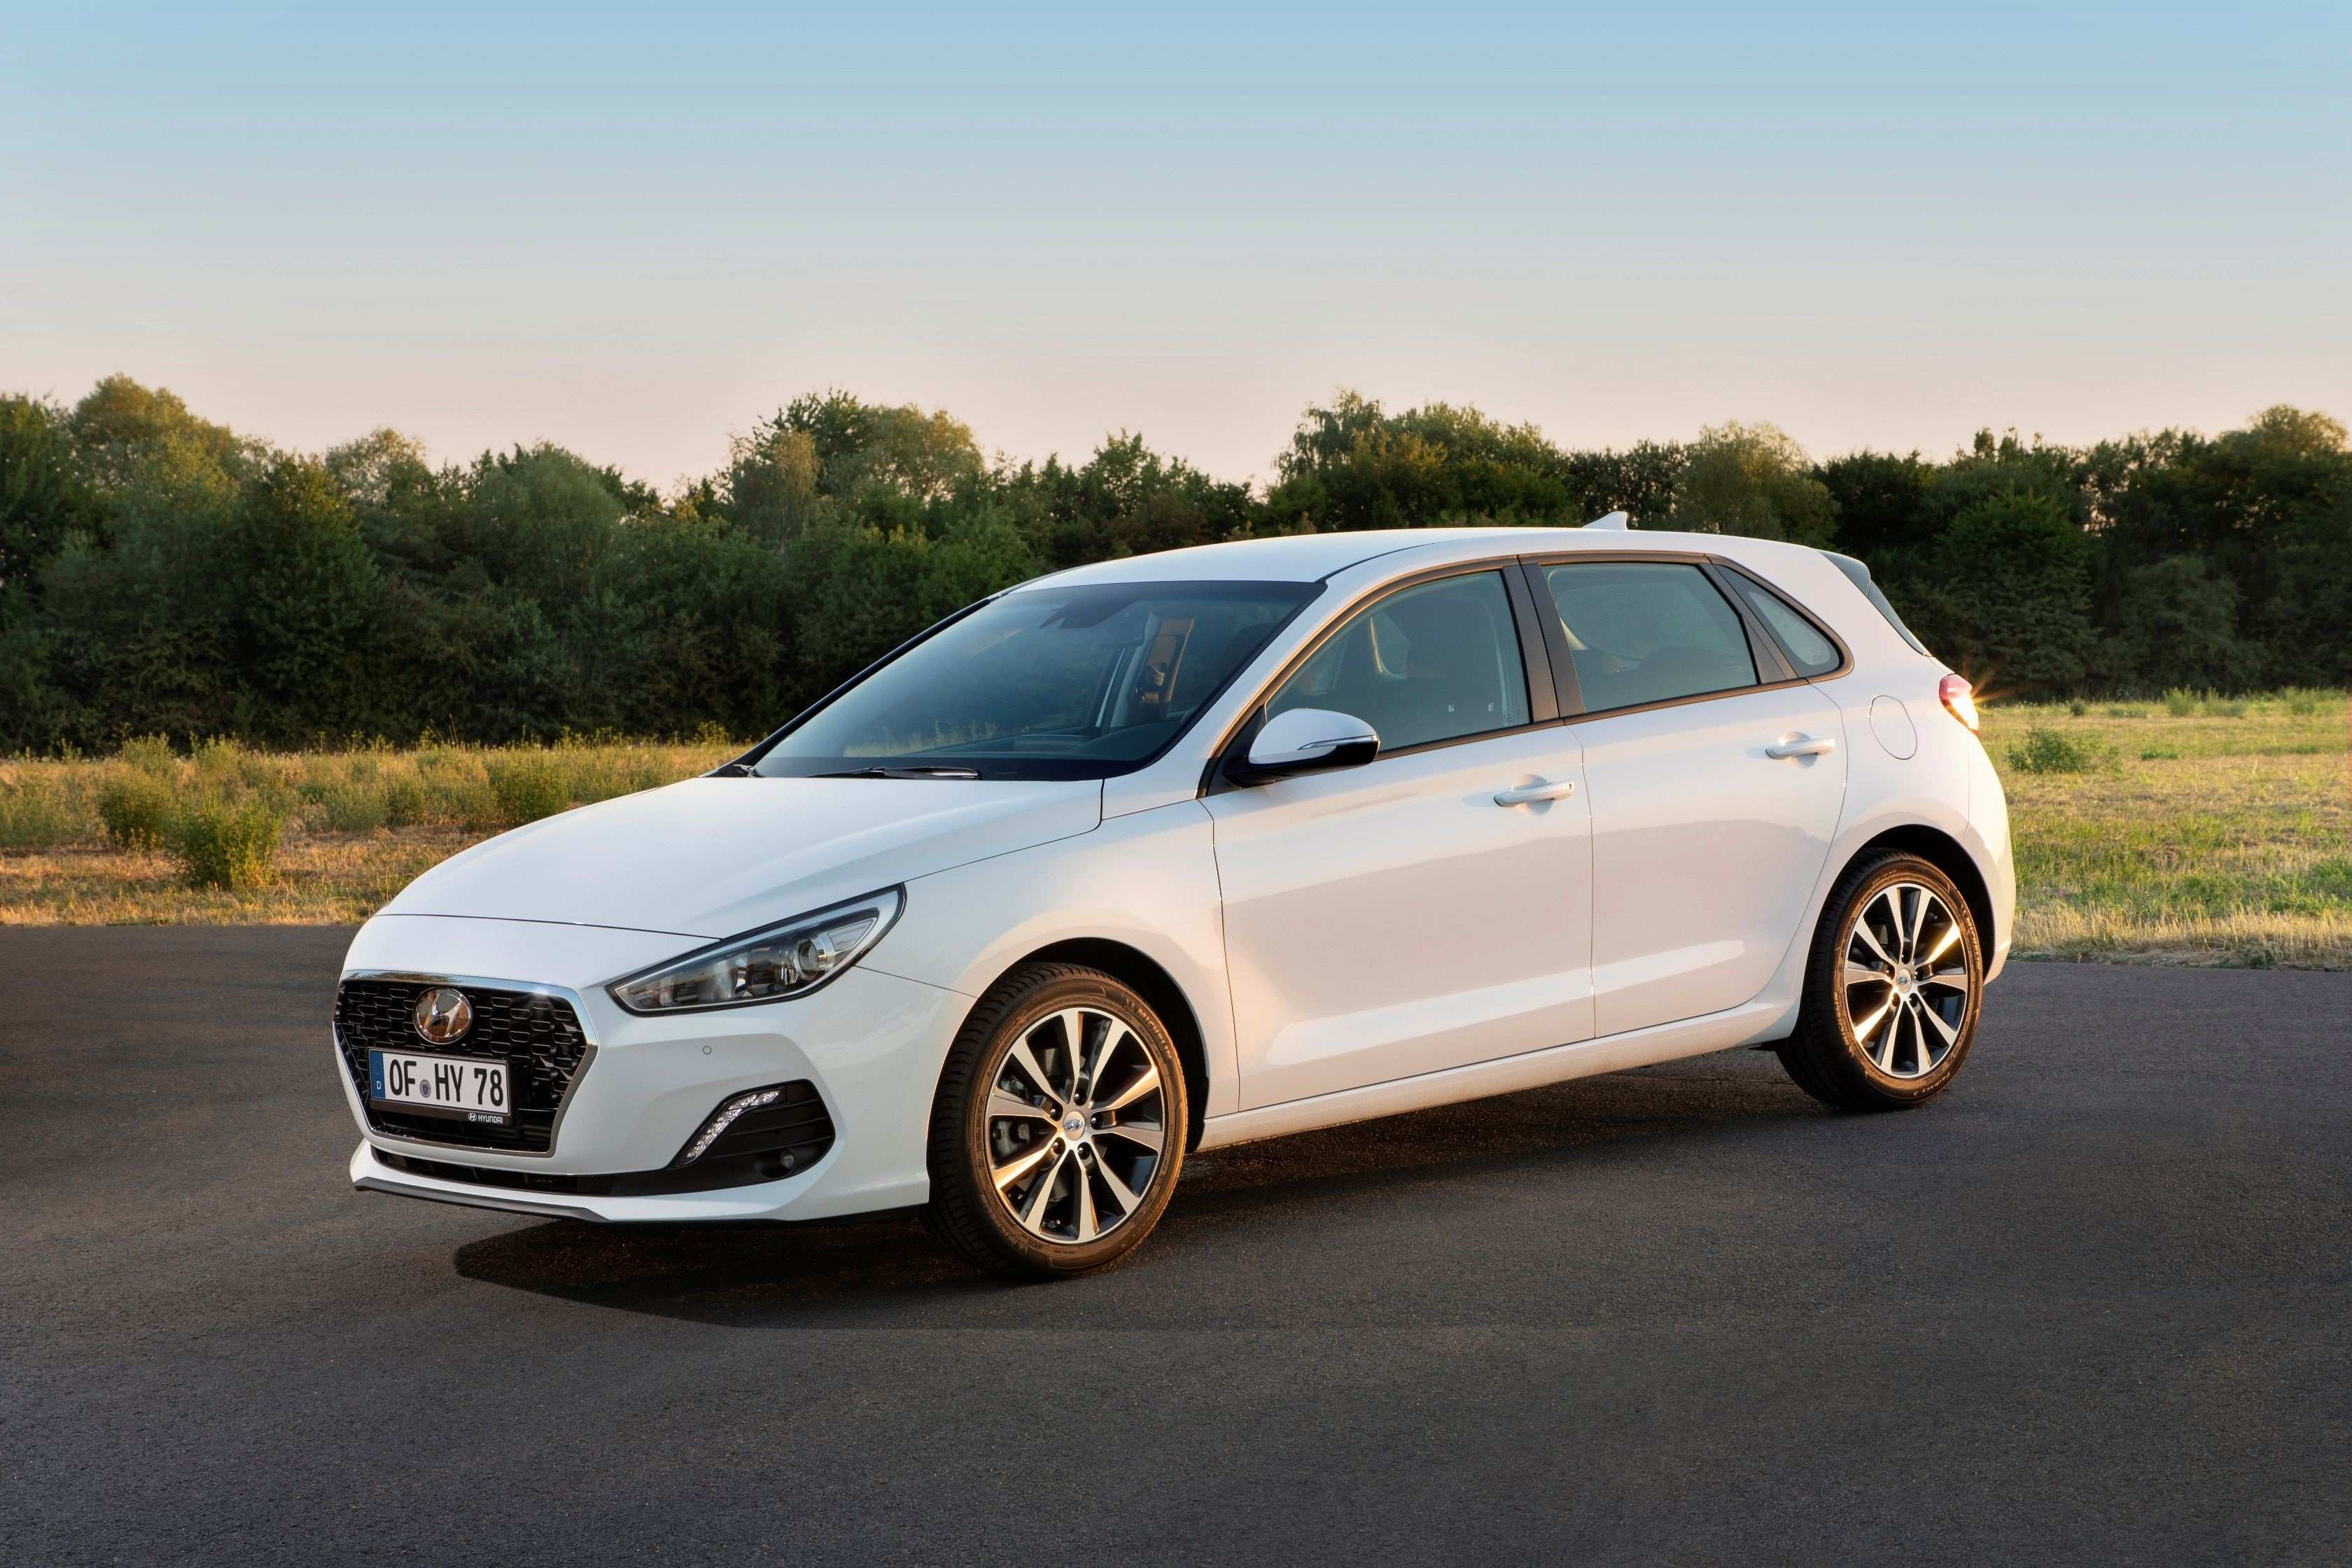 54 A 2020 Hyundai I30 Exterior And Interior